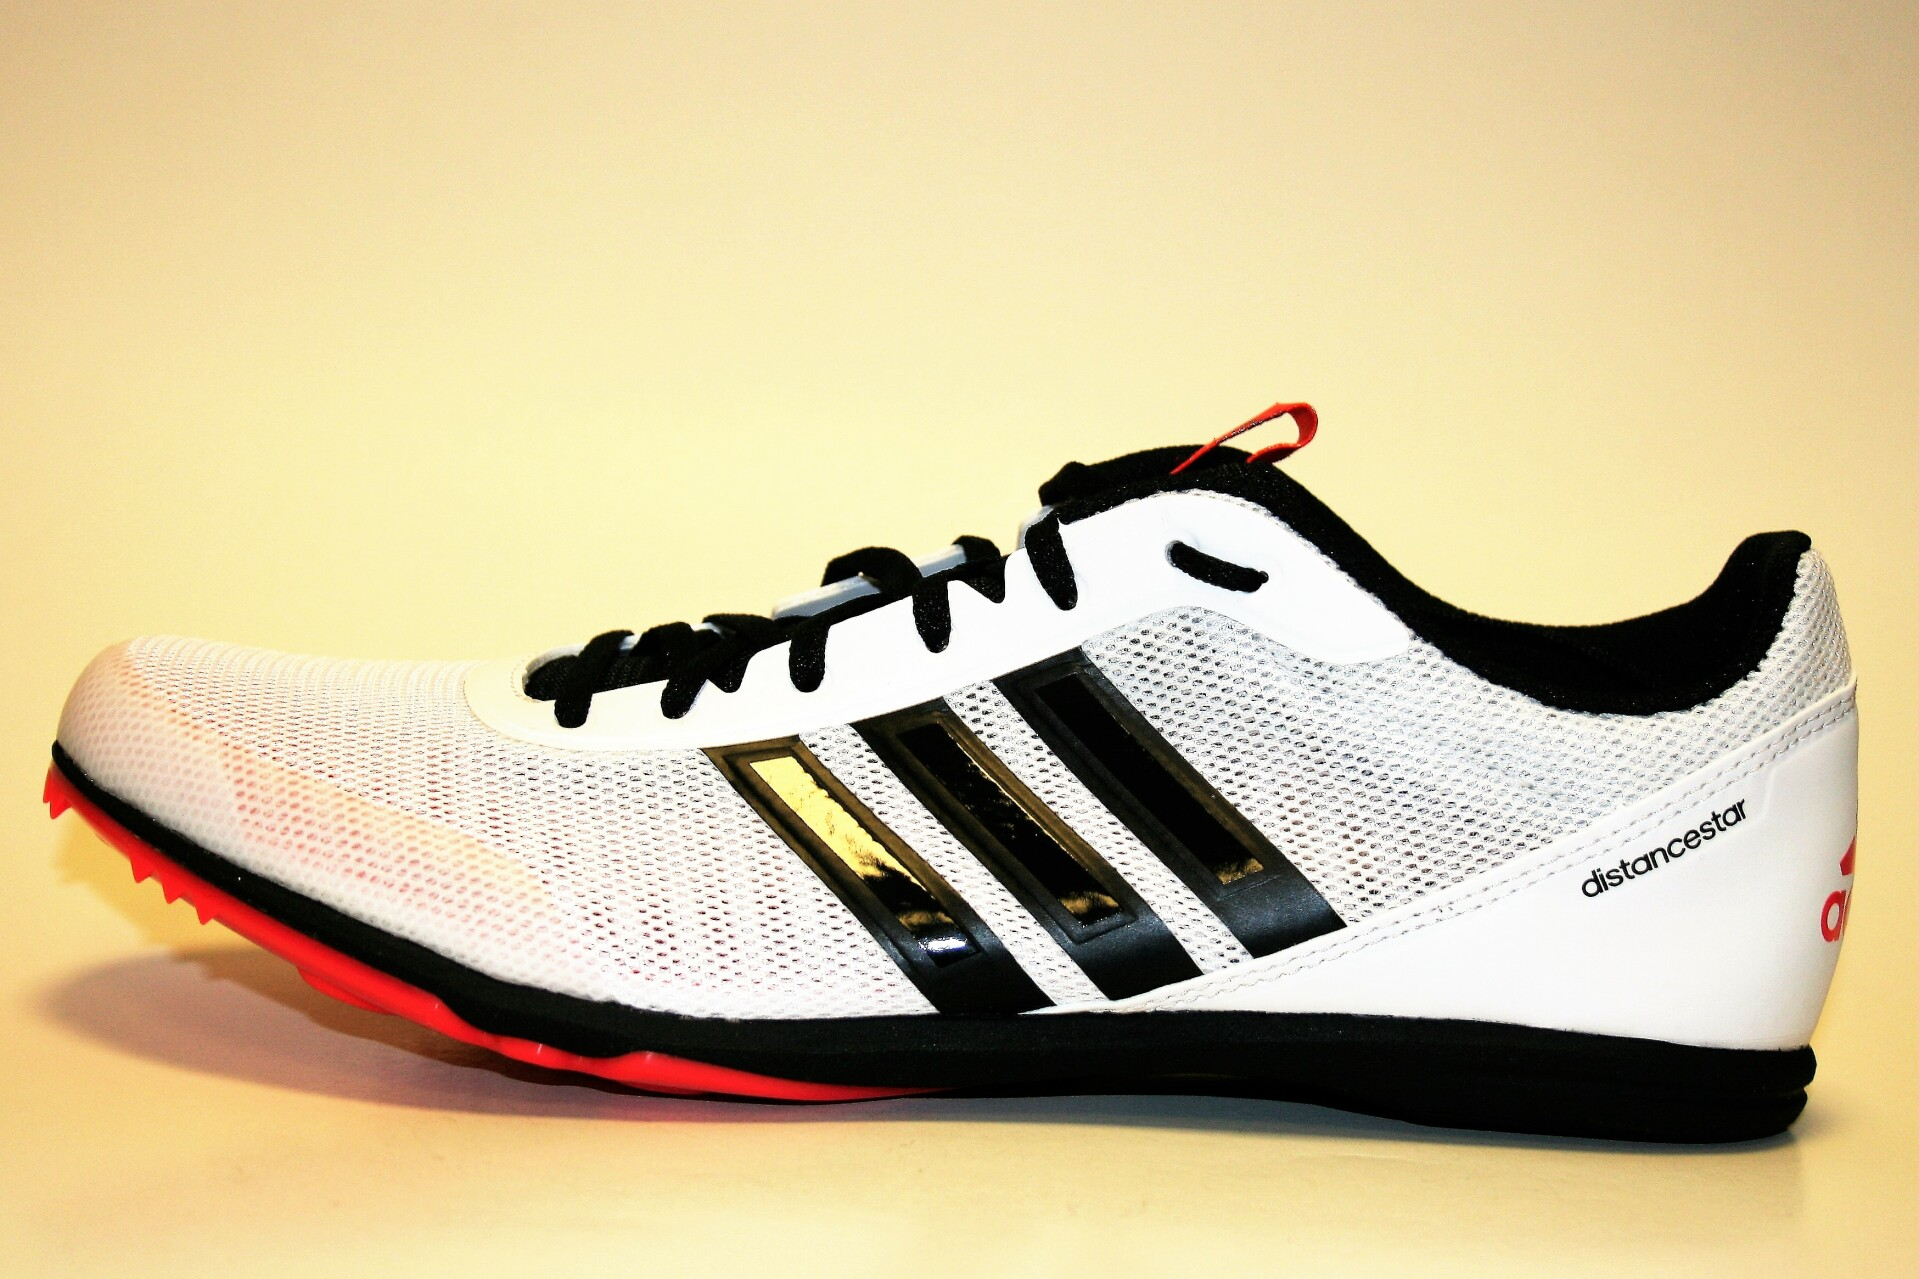 7aaf2e5a389 Adidas Distancestar wit (Allround) - Atletiekspikes.nl